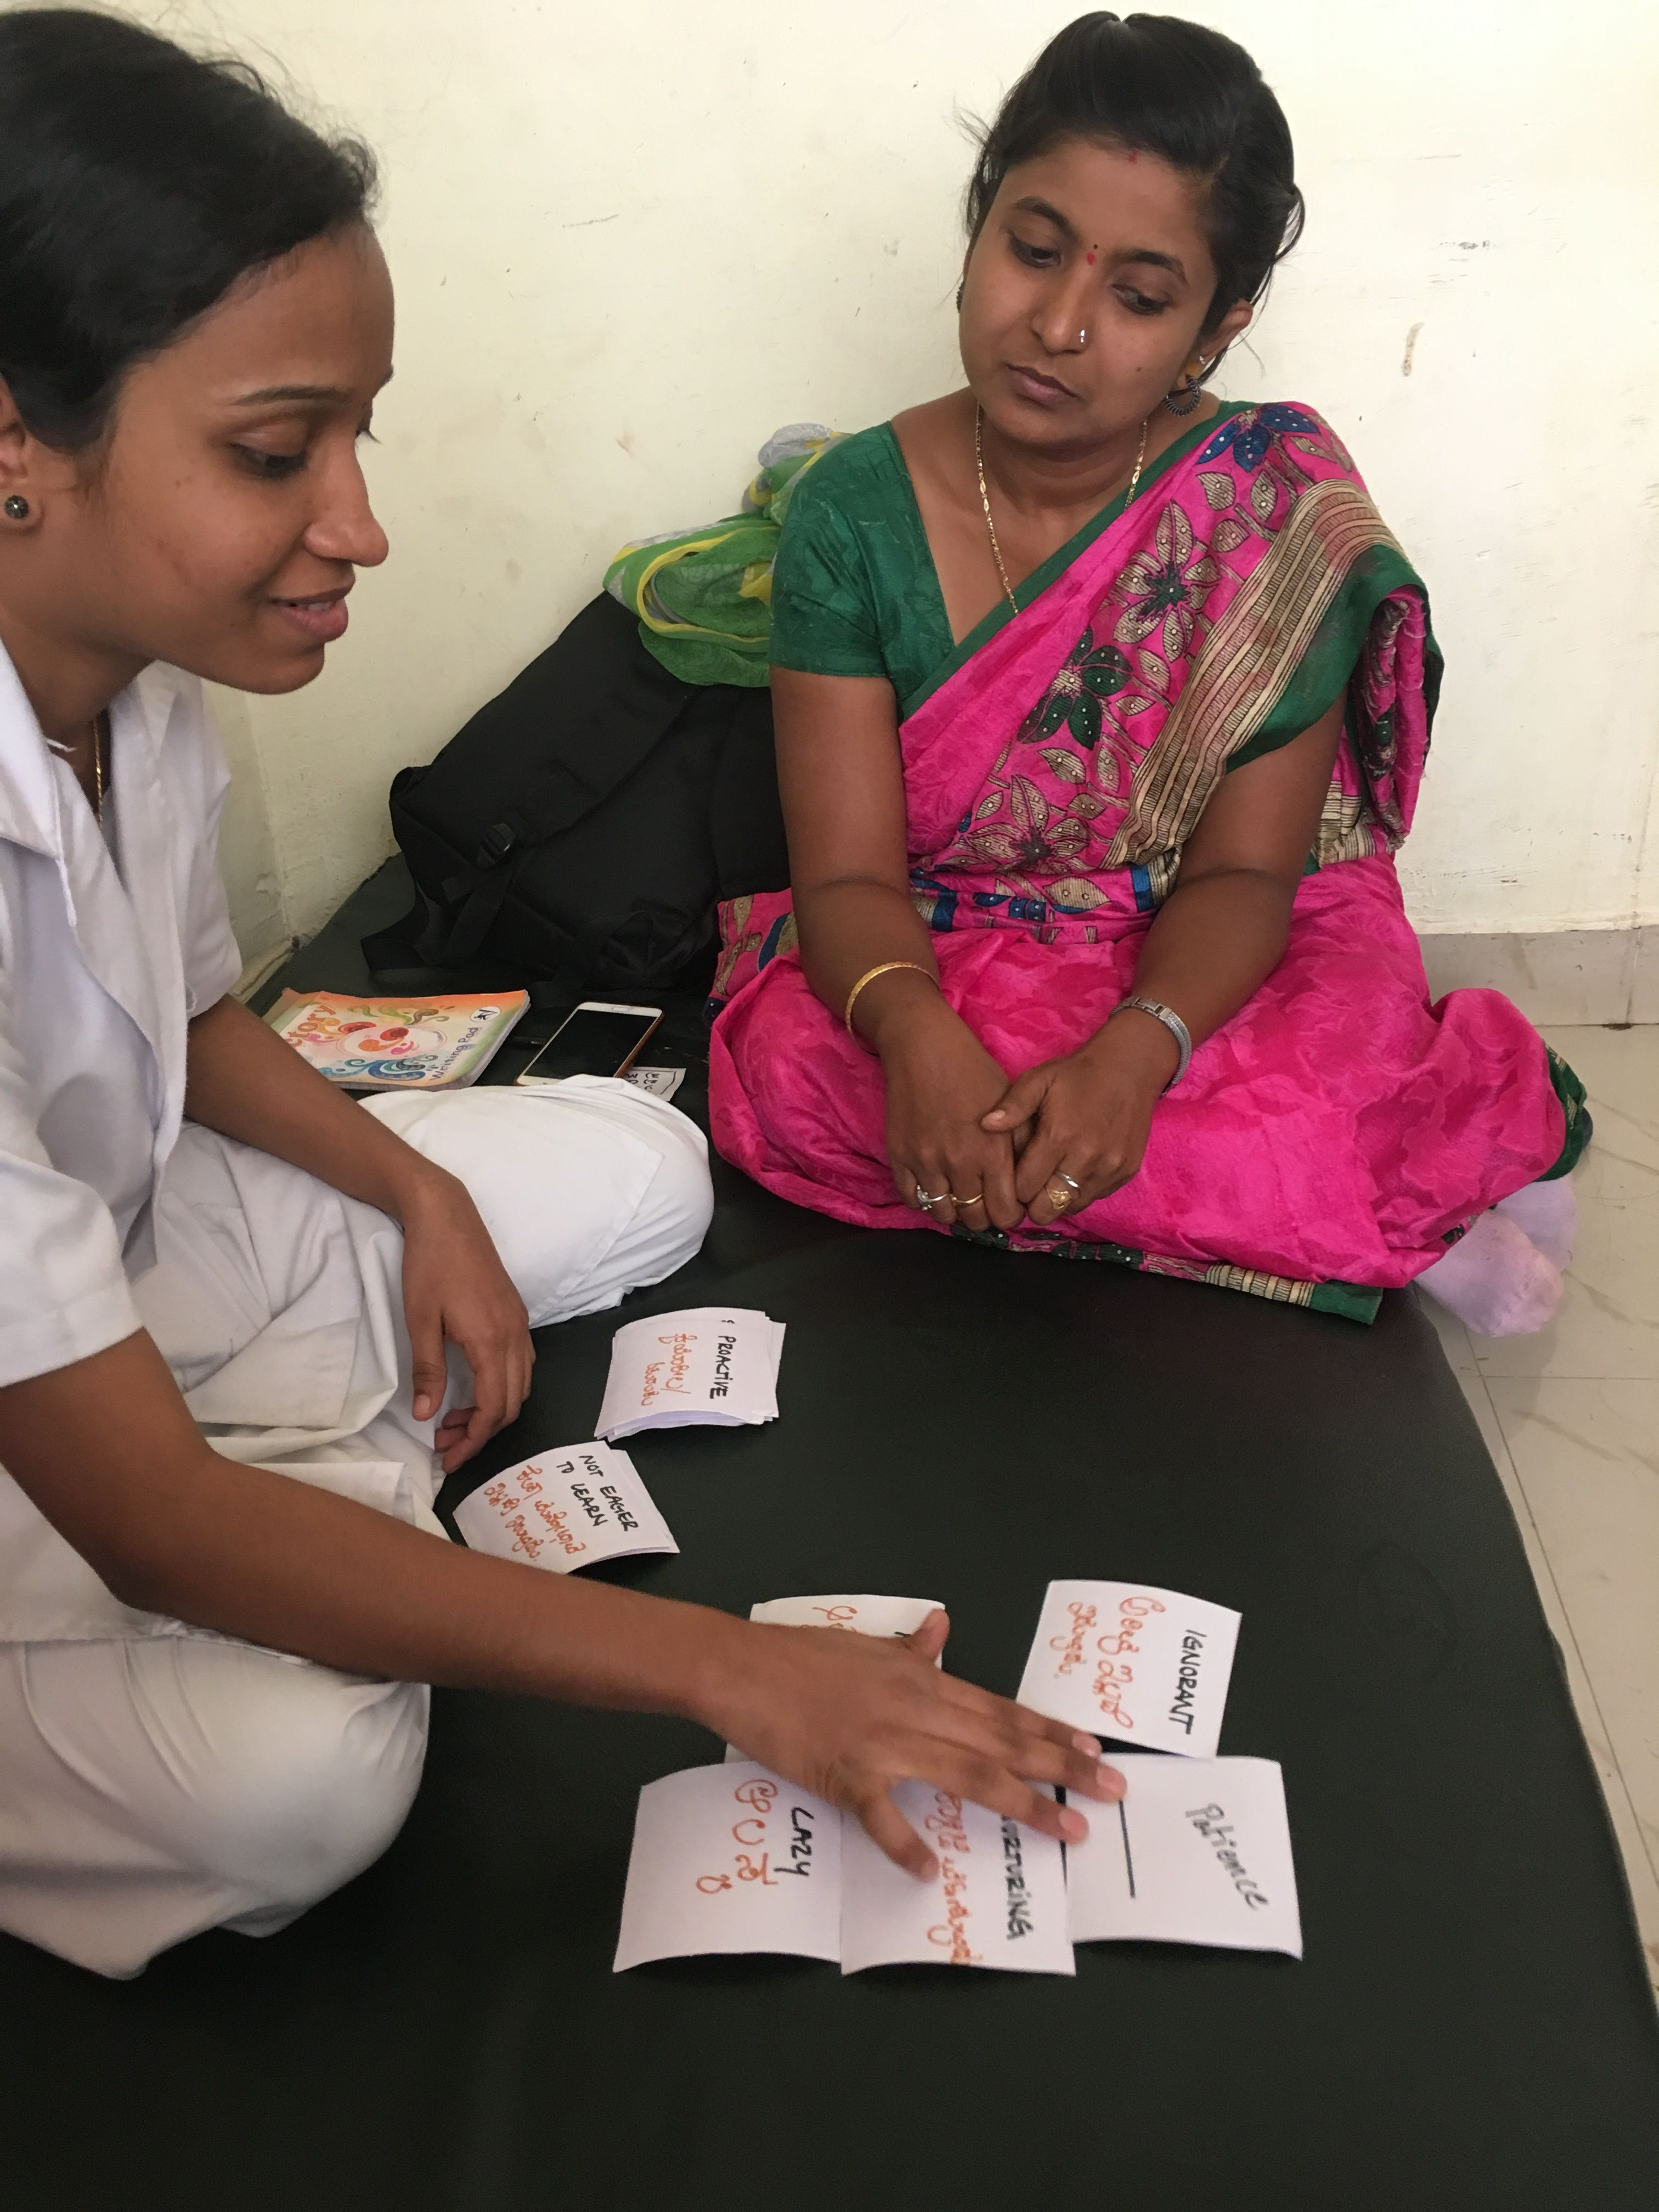 A woman uses paper cards as another woman looks on